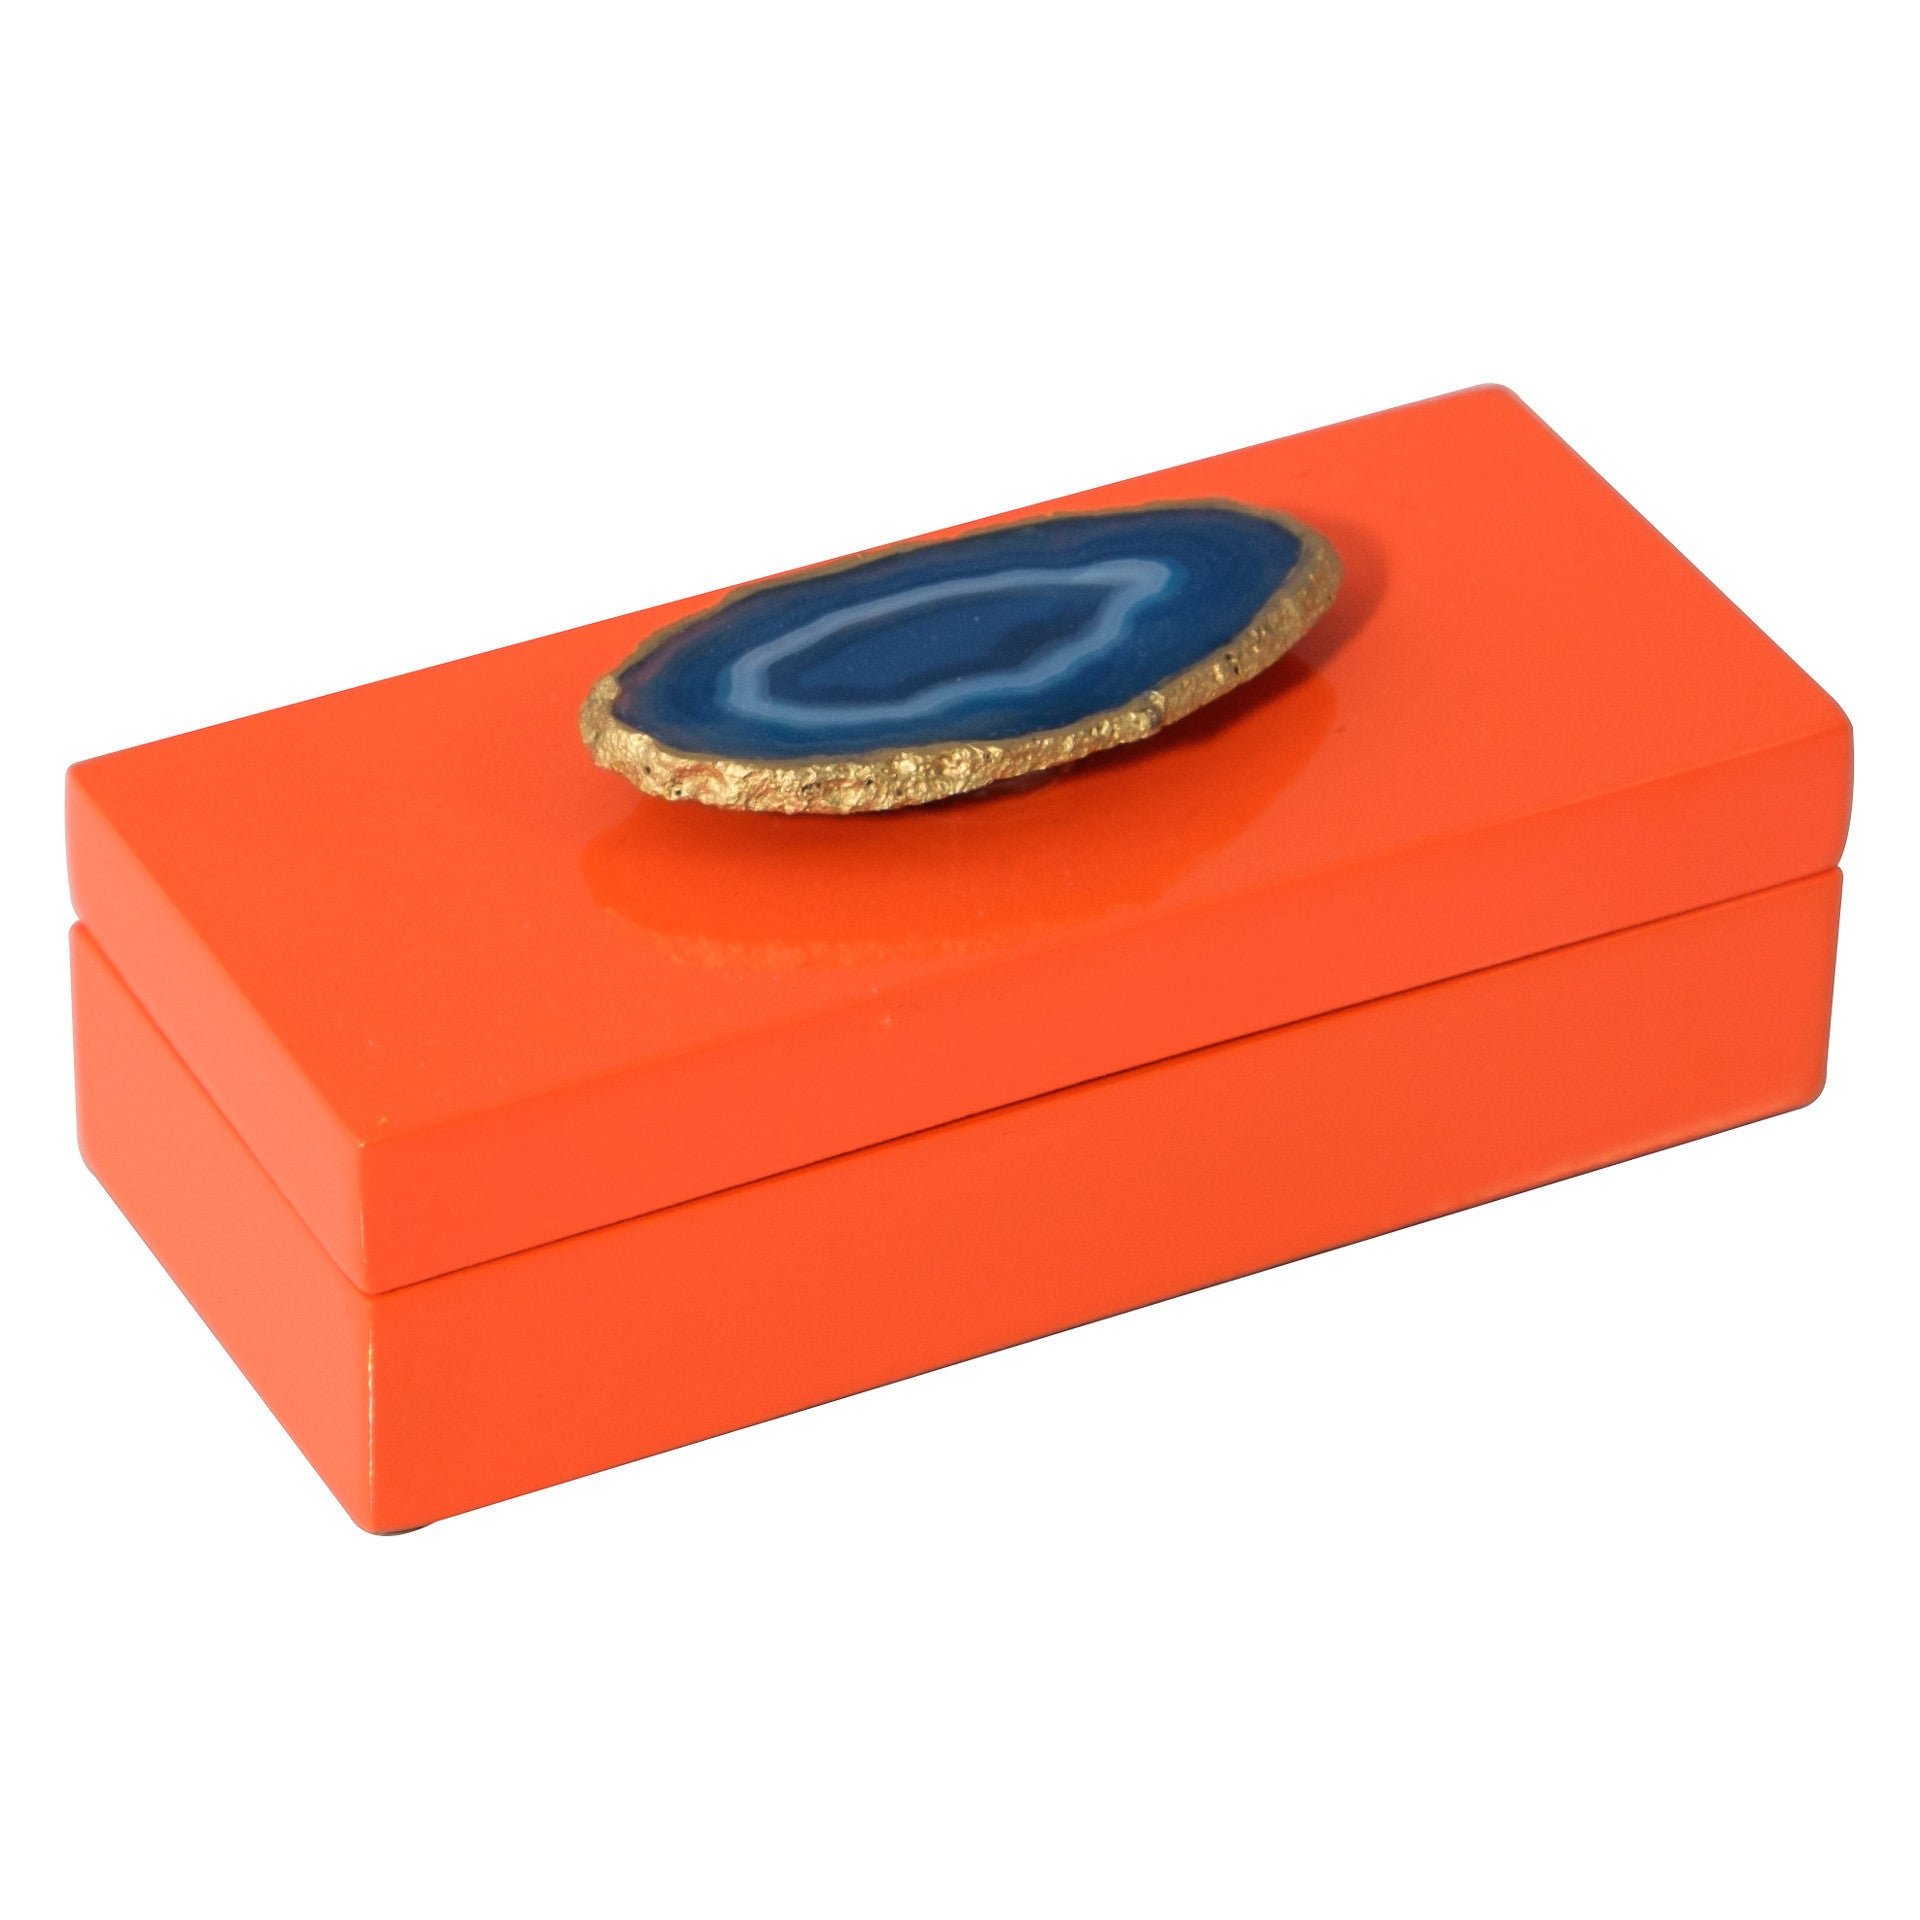 Small Orange Lacquer Box with Blue Agate